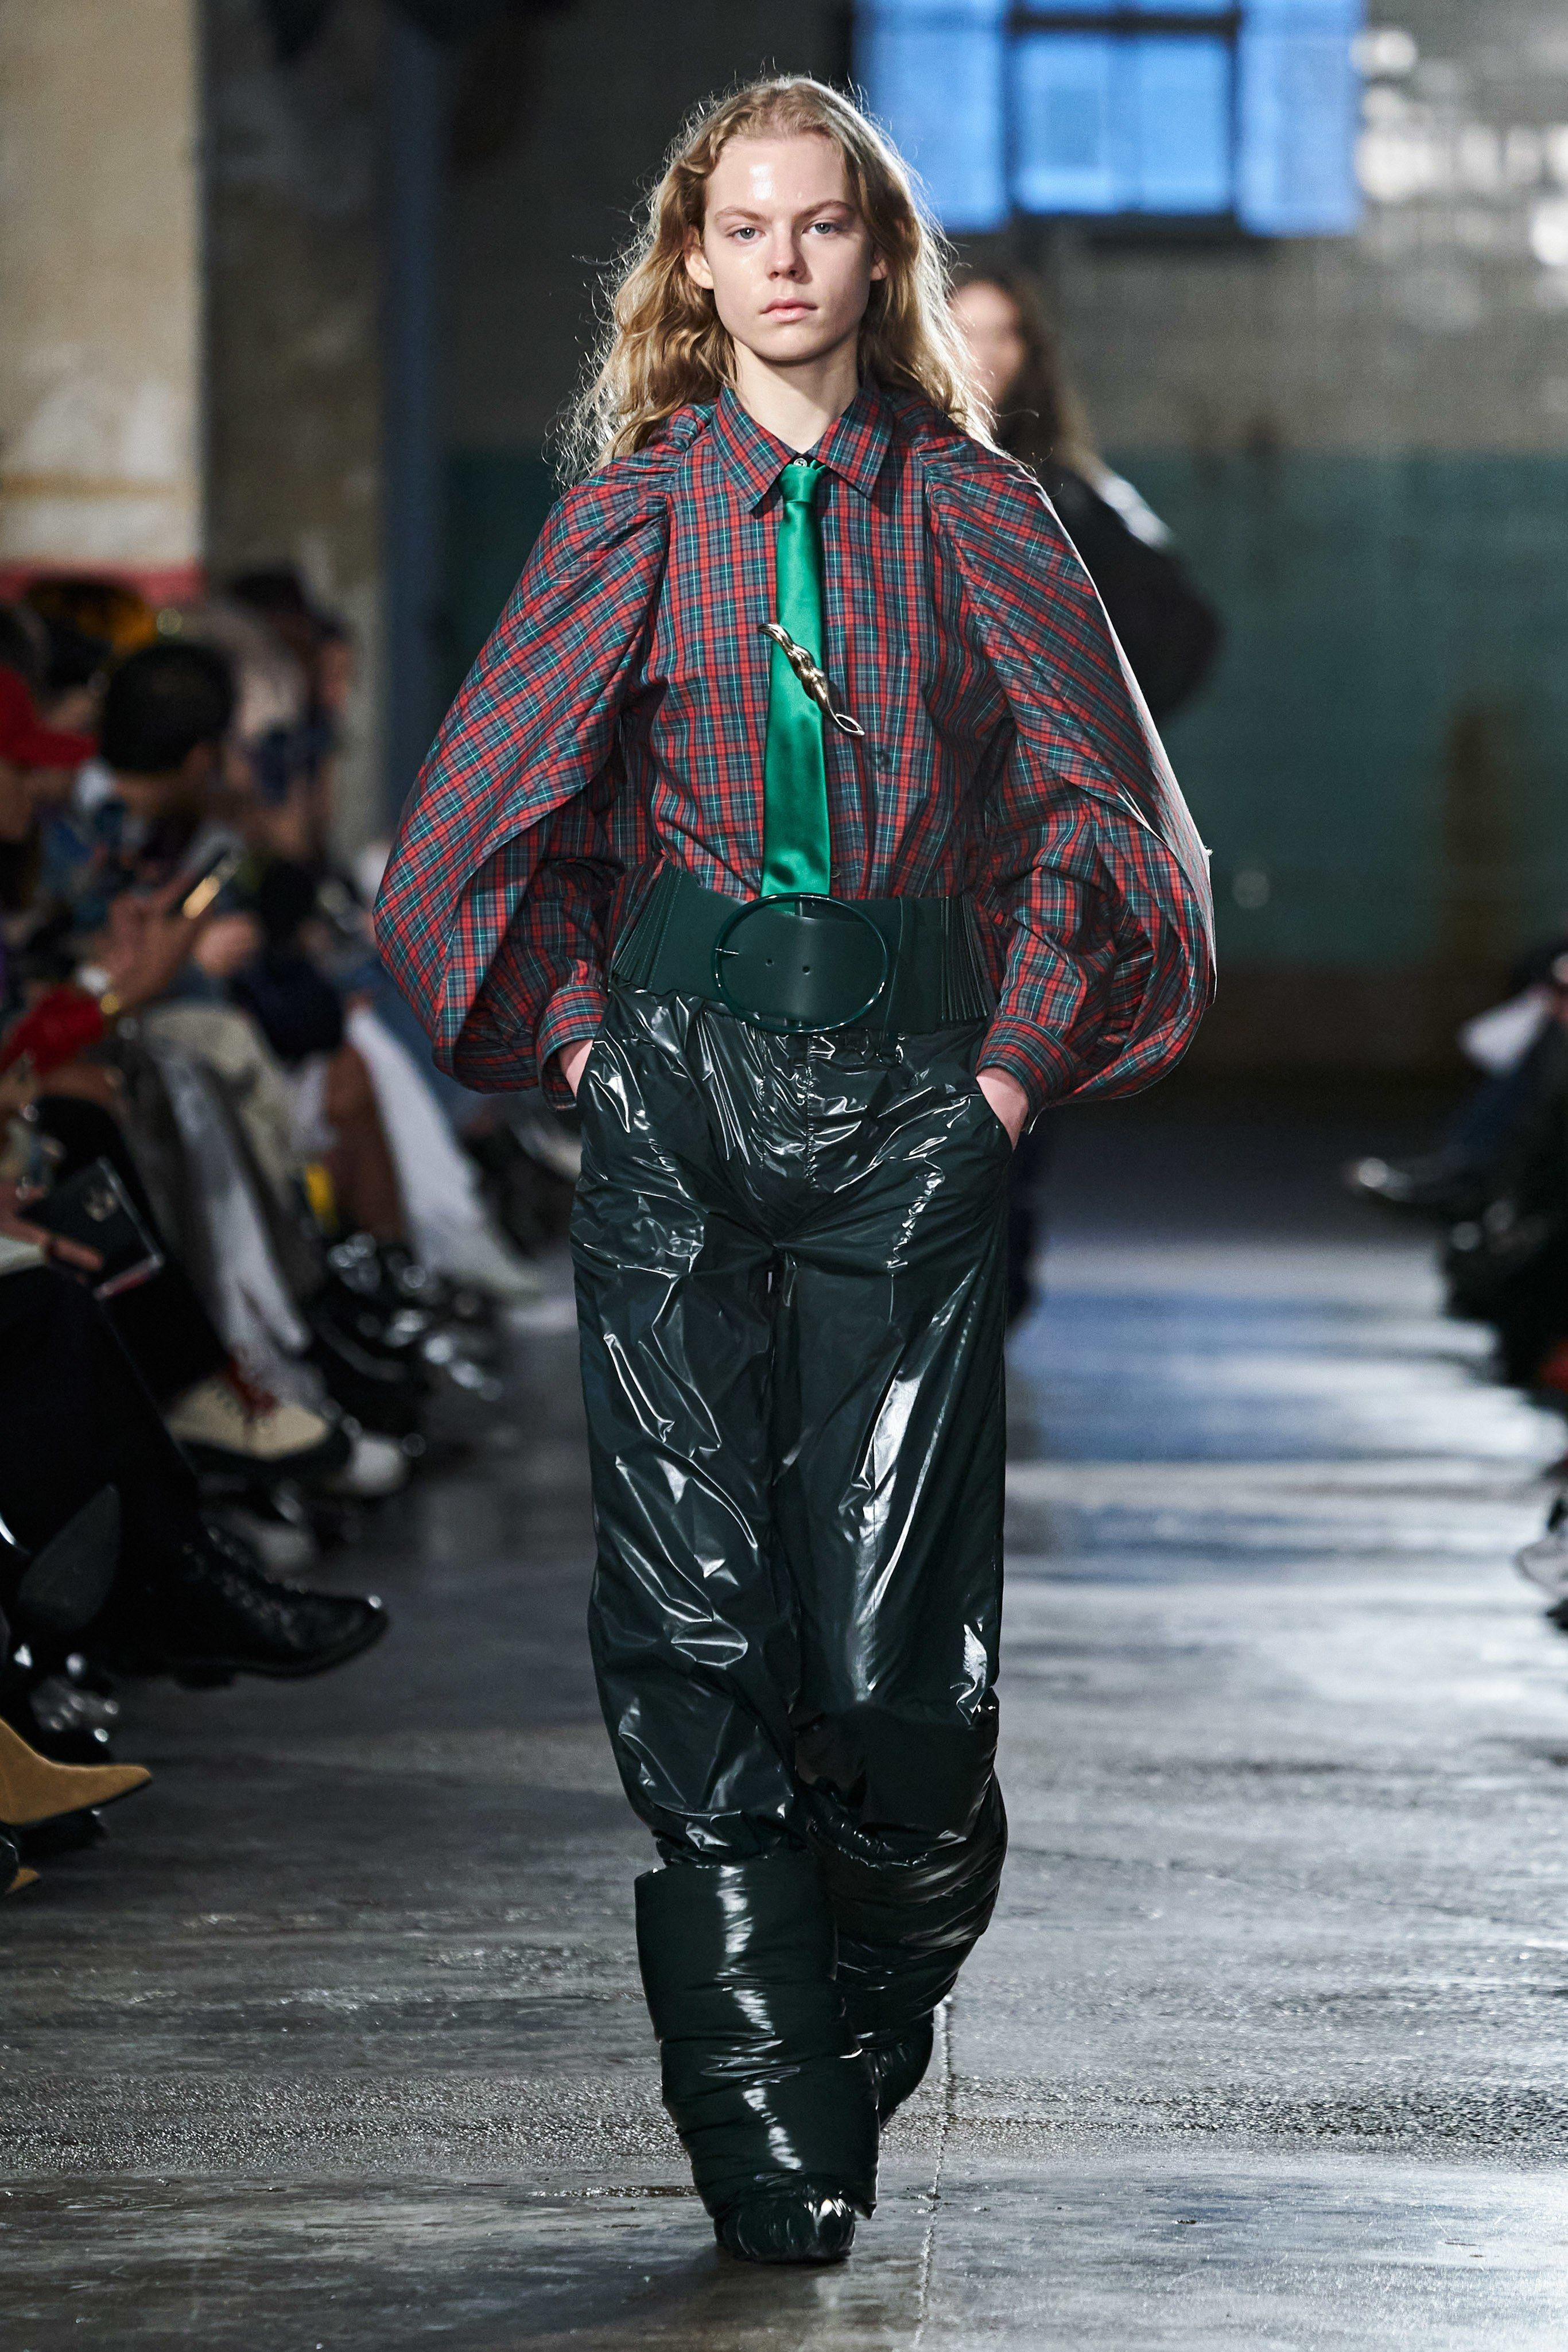 Toga Fall 2020 Ready-to-Wear Fashion Show -   Toga Fall 2020 Ready-to-Wear Collection -   Homepage    In the 2019-20 Fall / Winter season, trends are eyeing highs. Colorful silhouettes are exposed on voluminous dresses. Season woman, under the protection of the shoulders of the power show. The feathers widening the playing field, declaring their independence, grab a leading role.